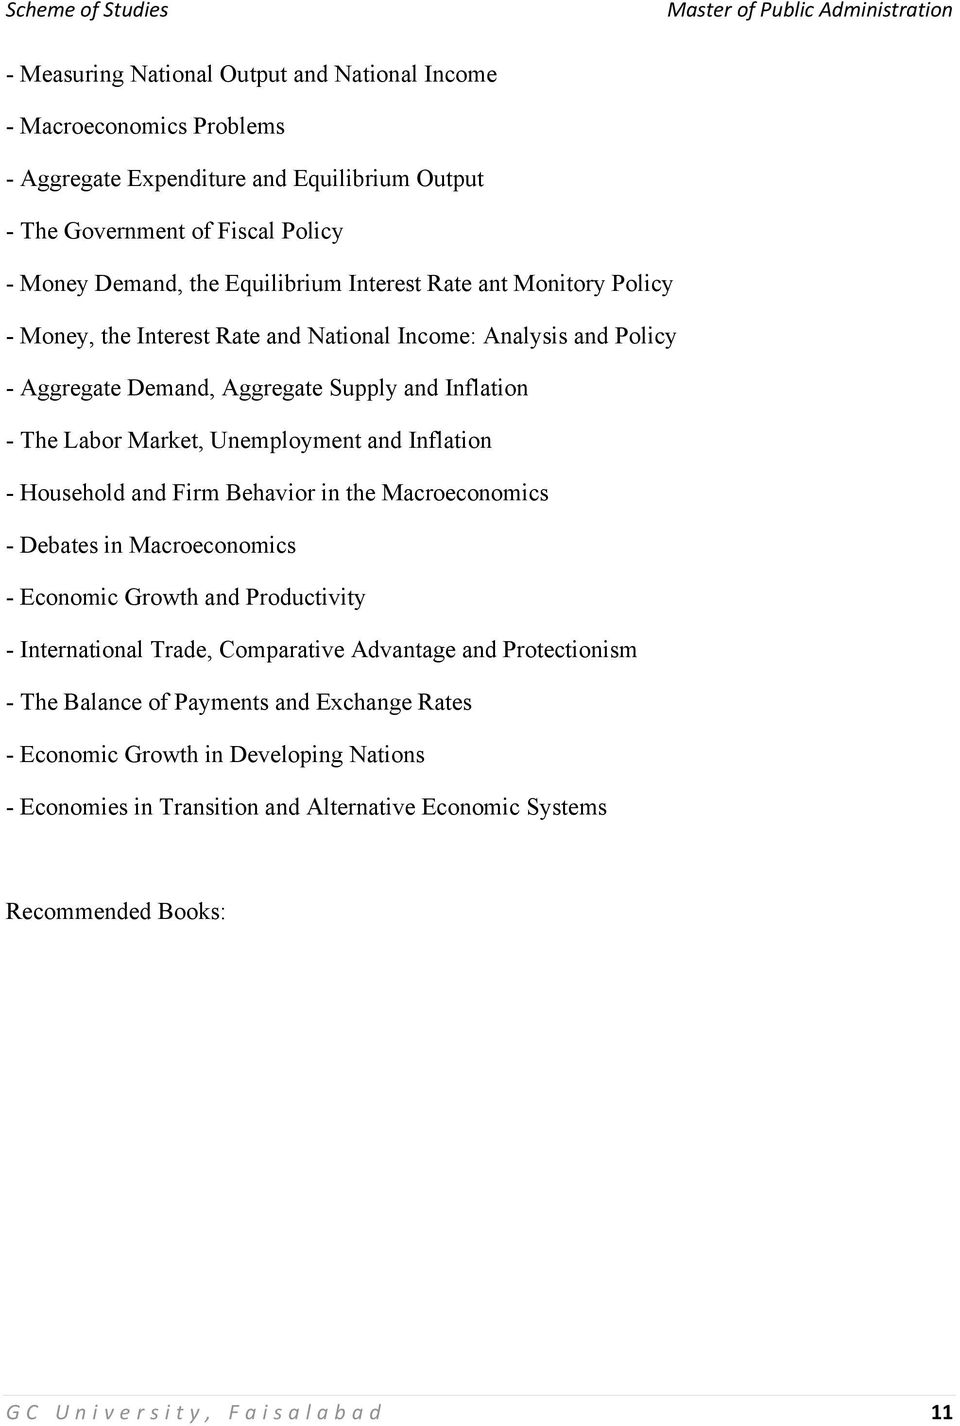 and Inflation - Household and Firm Behavior in the Macroeconomics - Debates in Macroeconomics - Economic Growth and Productivity - International Trade, Comparative Advantage and